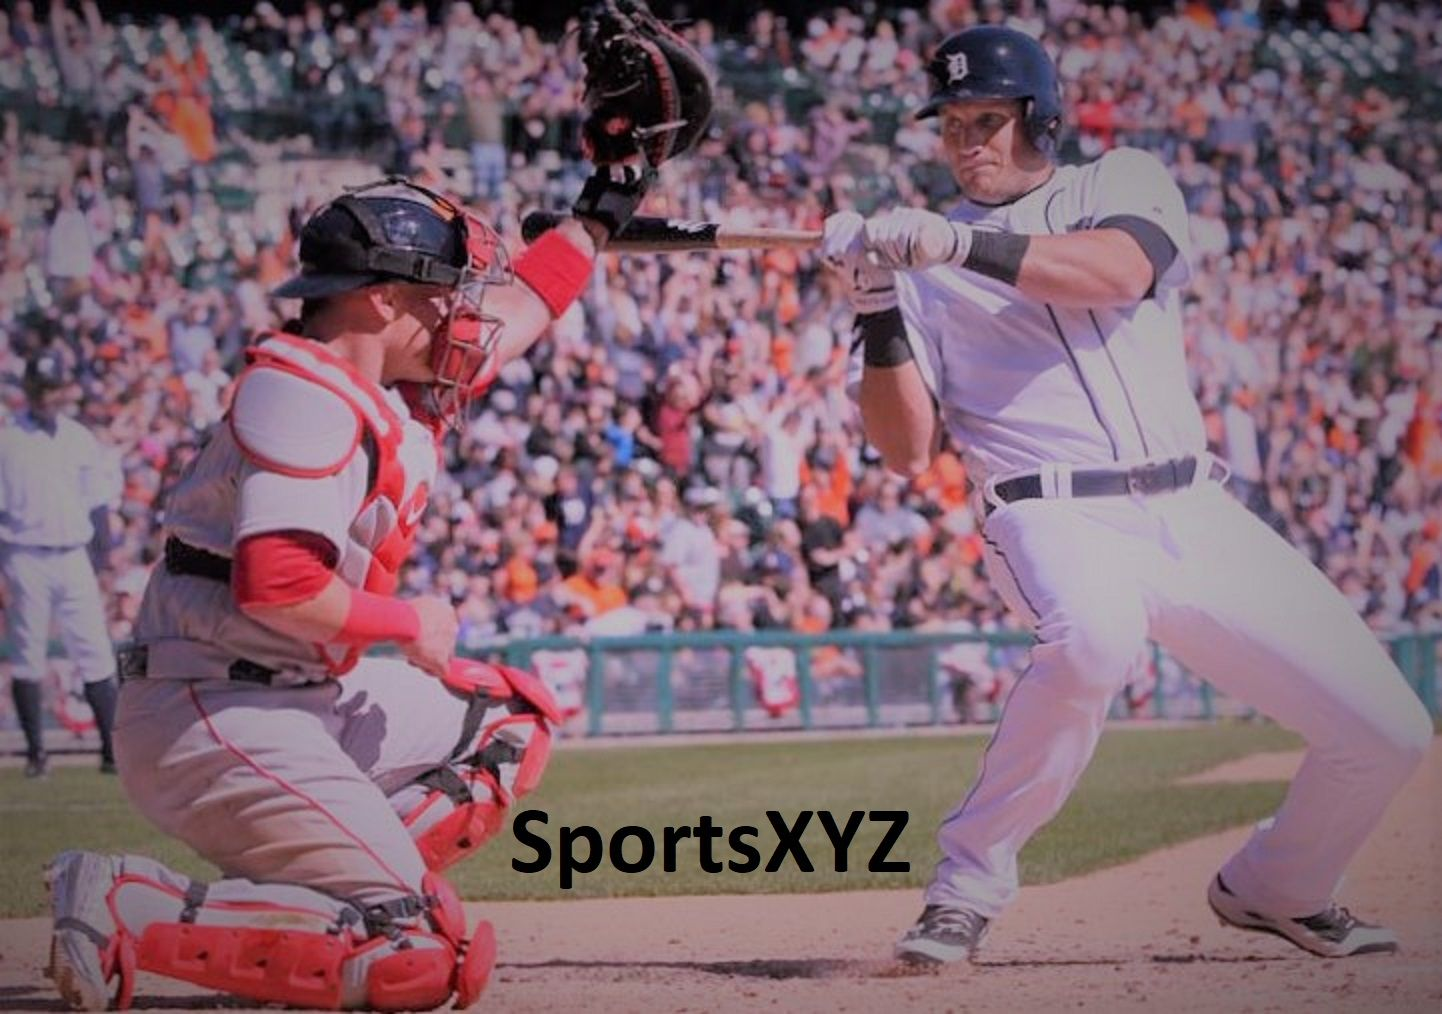 Detroit Tigers vs. Boston Red Sox Live Streaming Watch